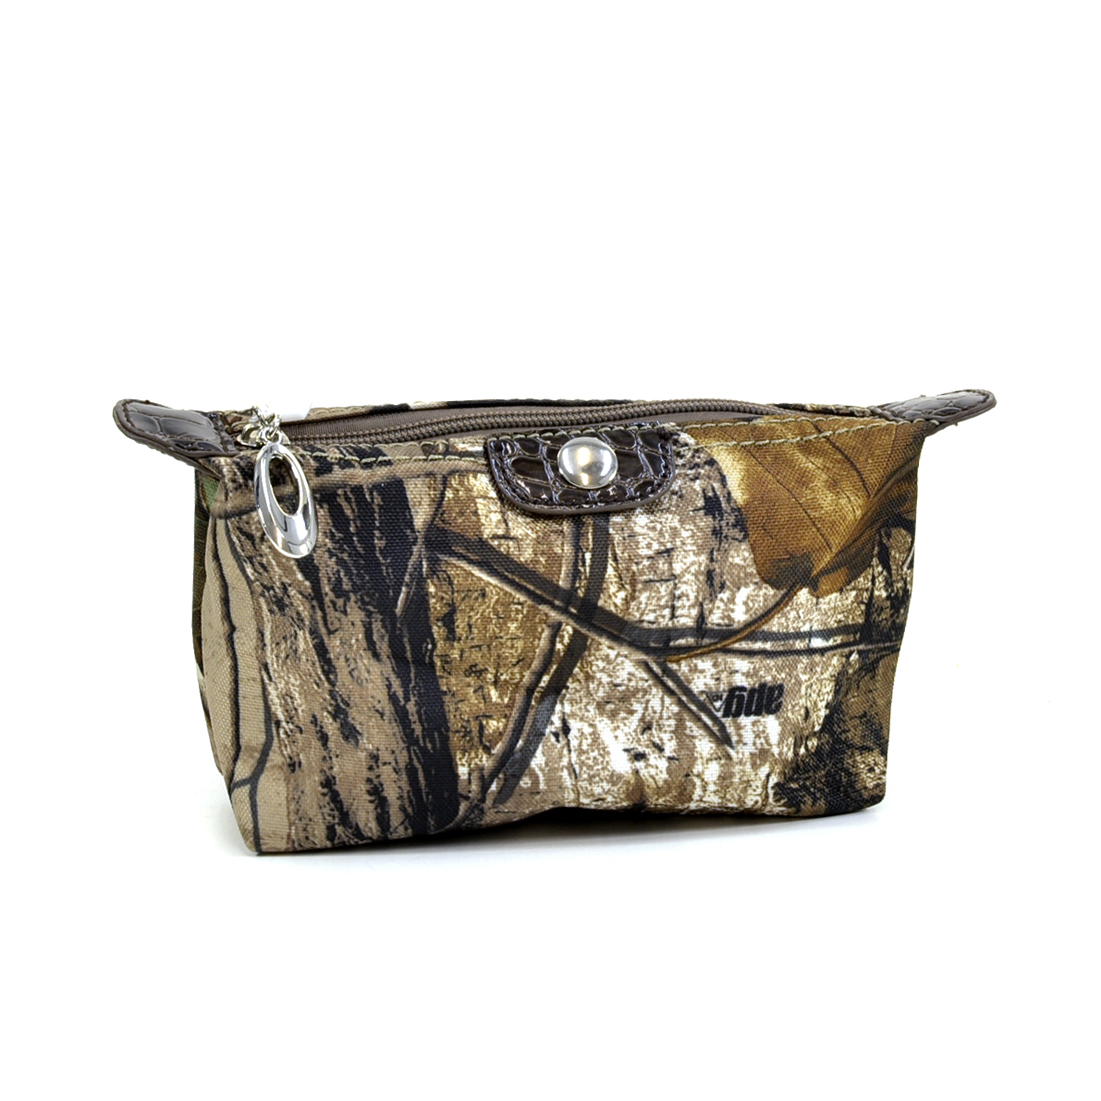 Realtree® Camouflage Fabric Cosmetic Bag w/ Faux Leather Trim - Camouflage/Coffee Trim